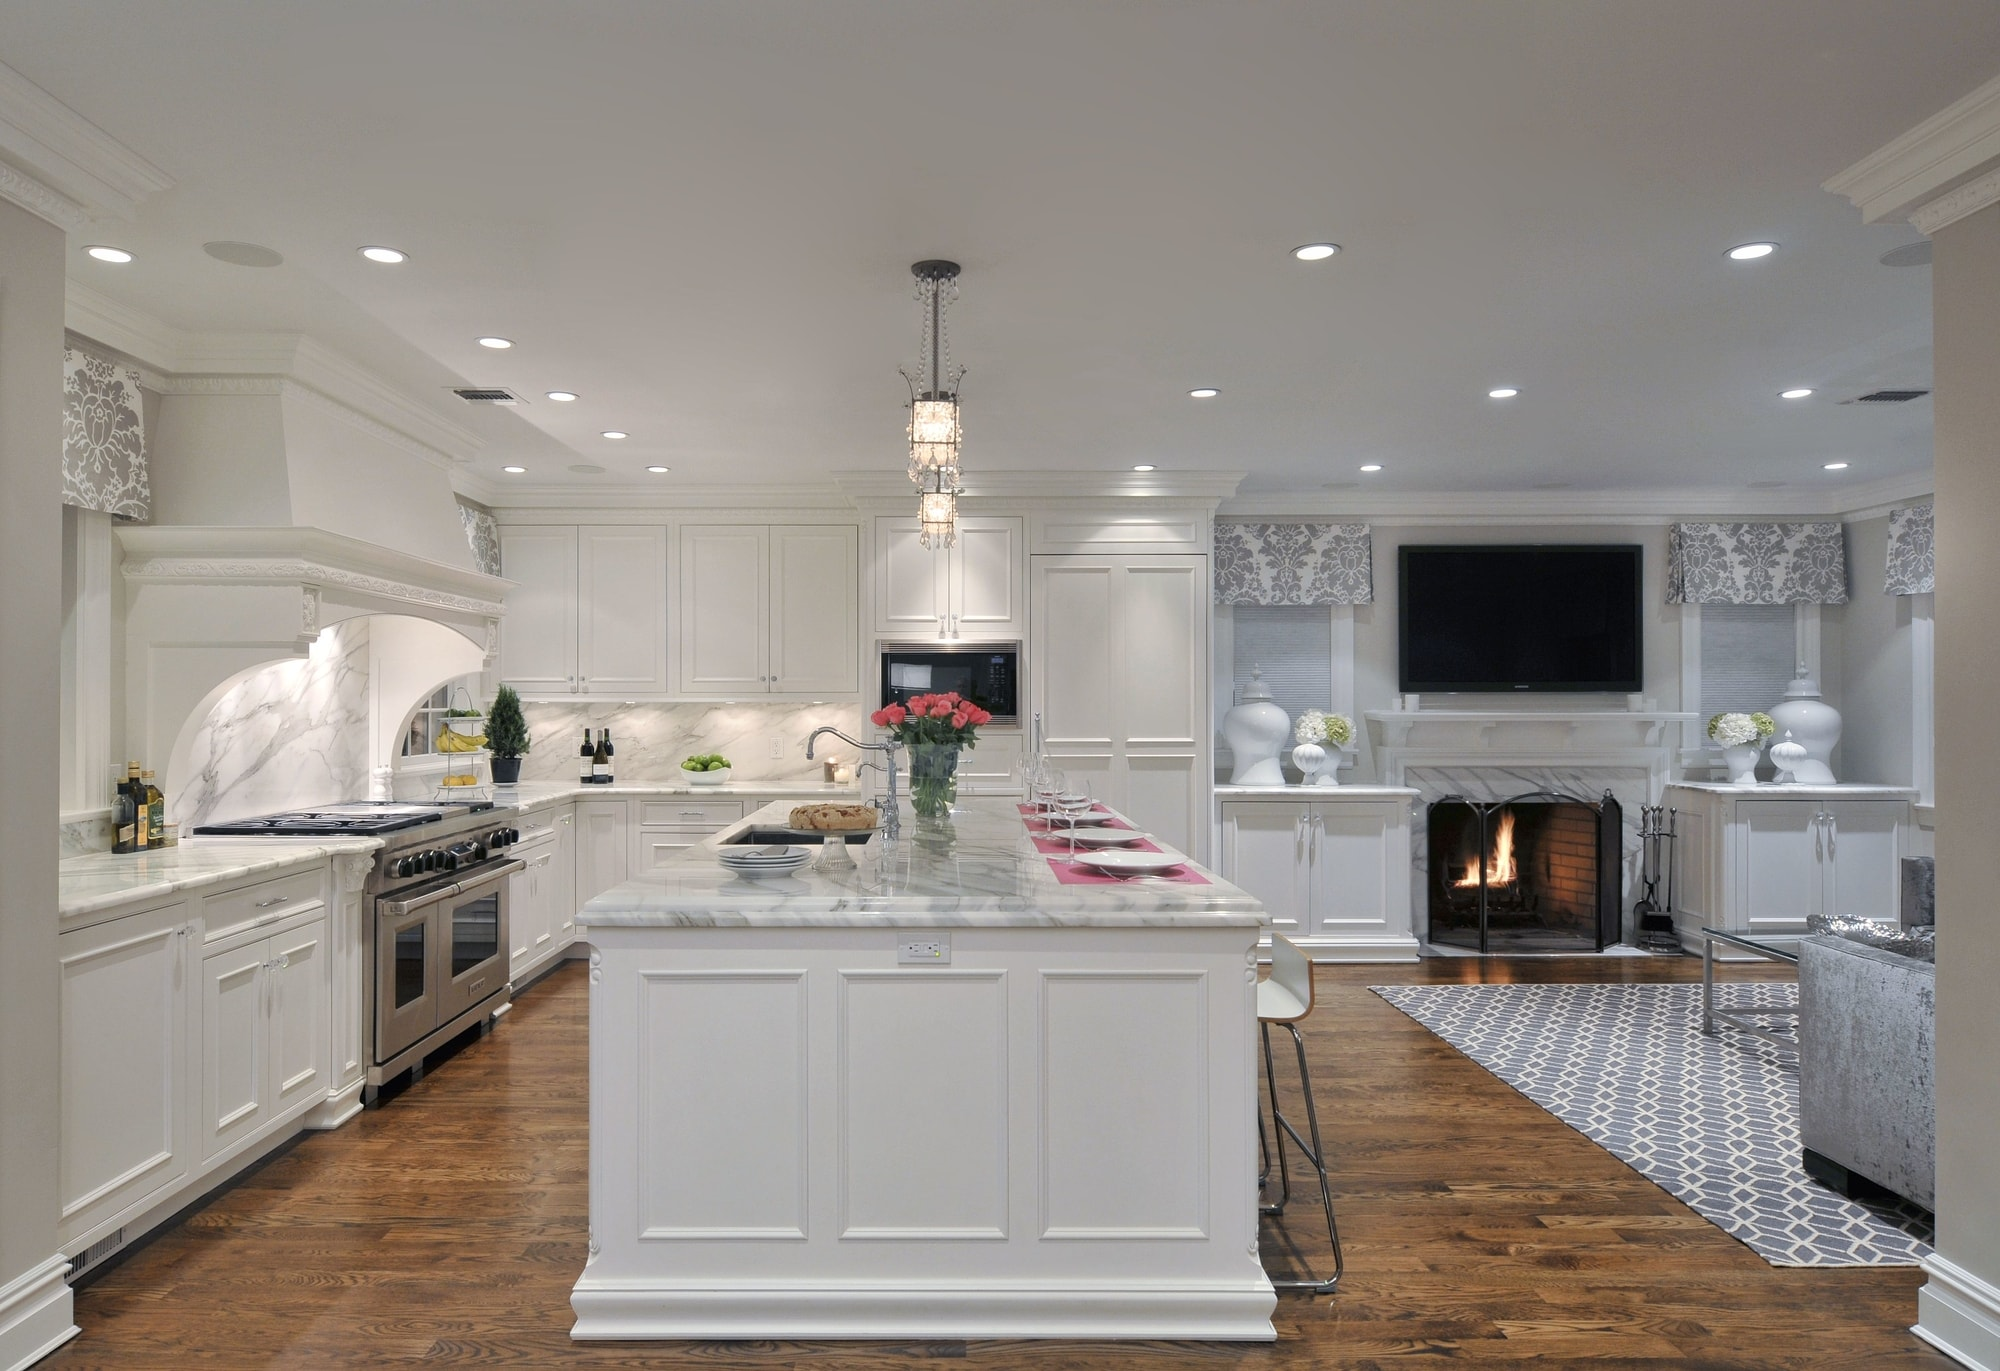 Transitional style kitchen with a small open plan design